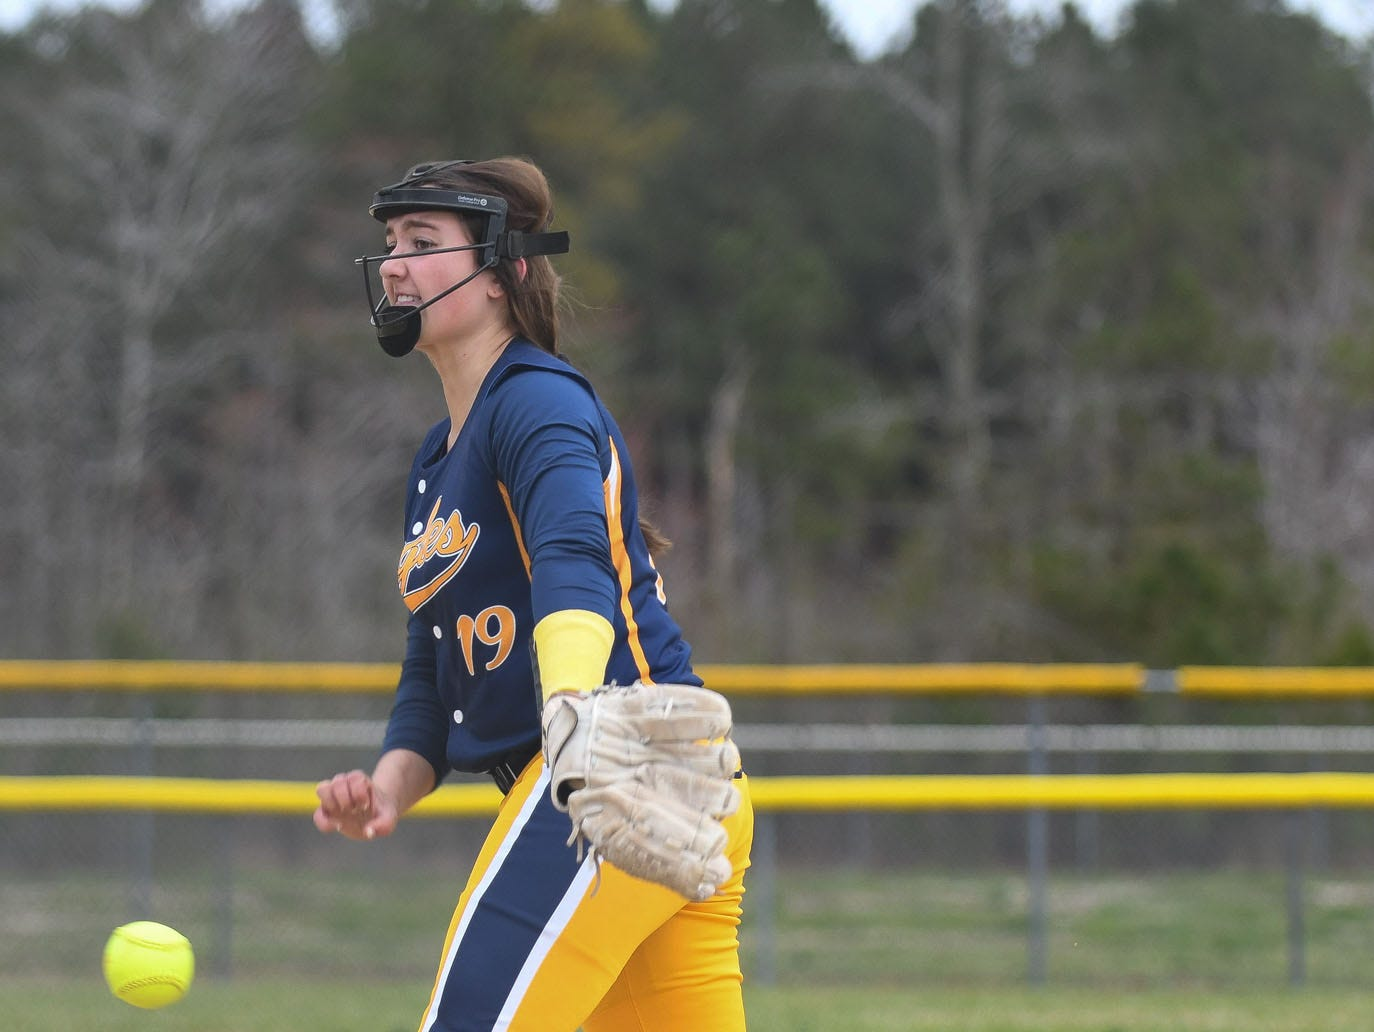 Holly Grove's Jenna Laird pitches against Chincoteague on Wednesday, March 20, 2019 in Westover, Md.